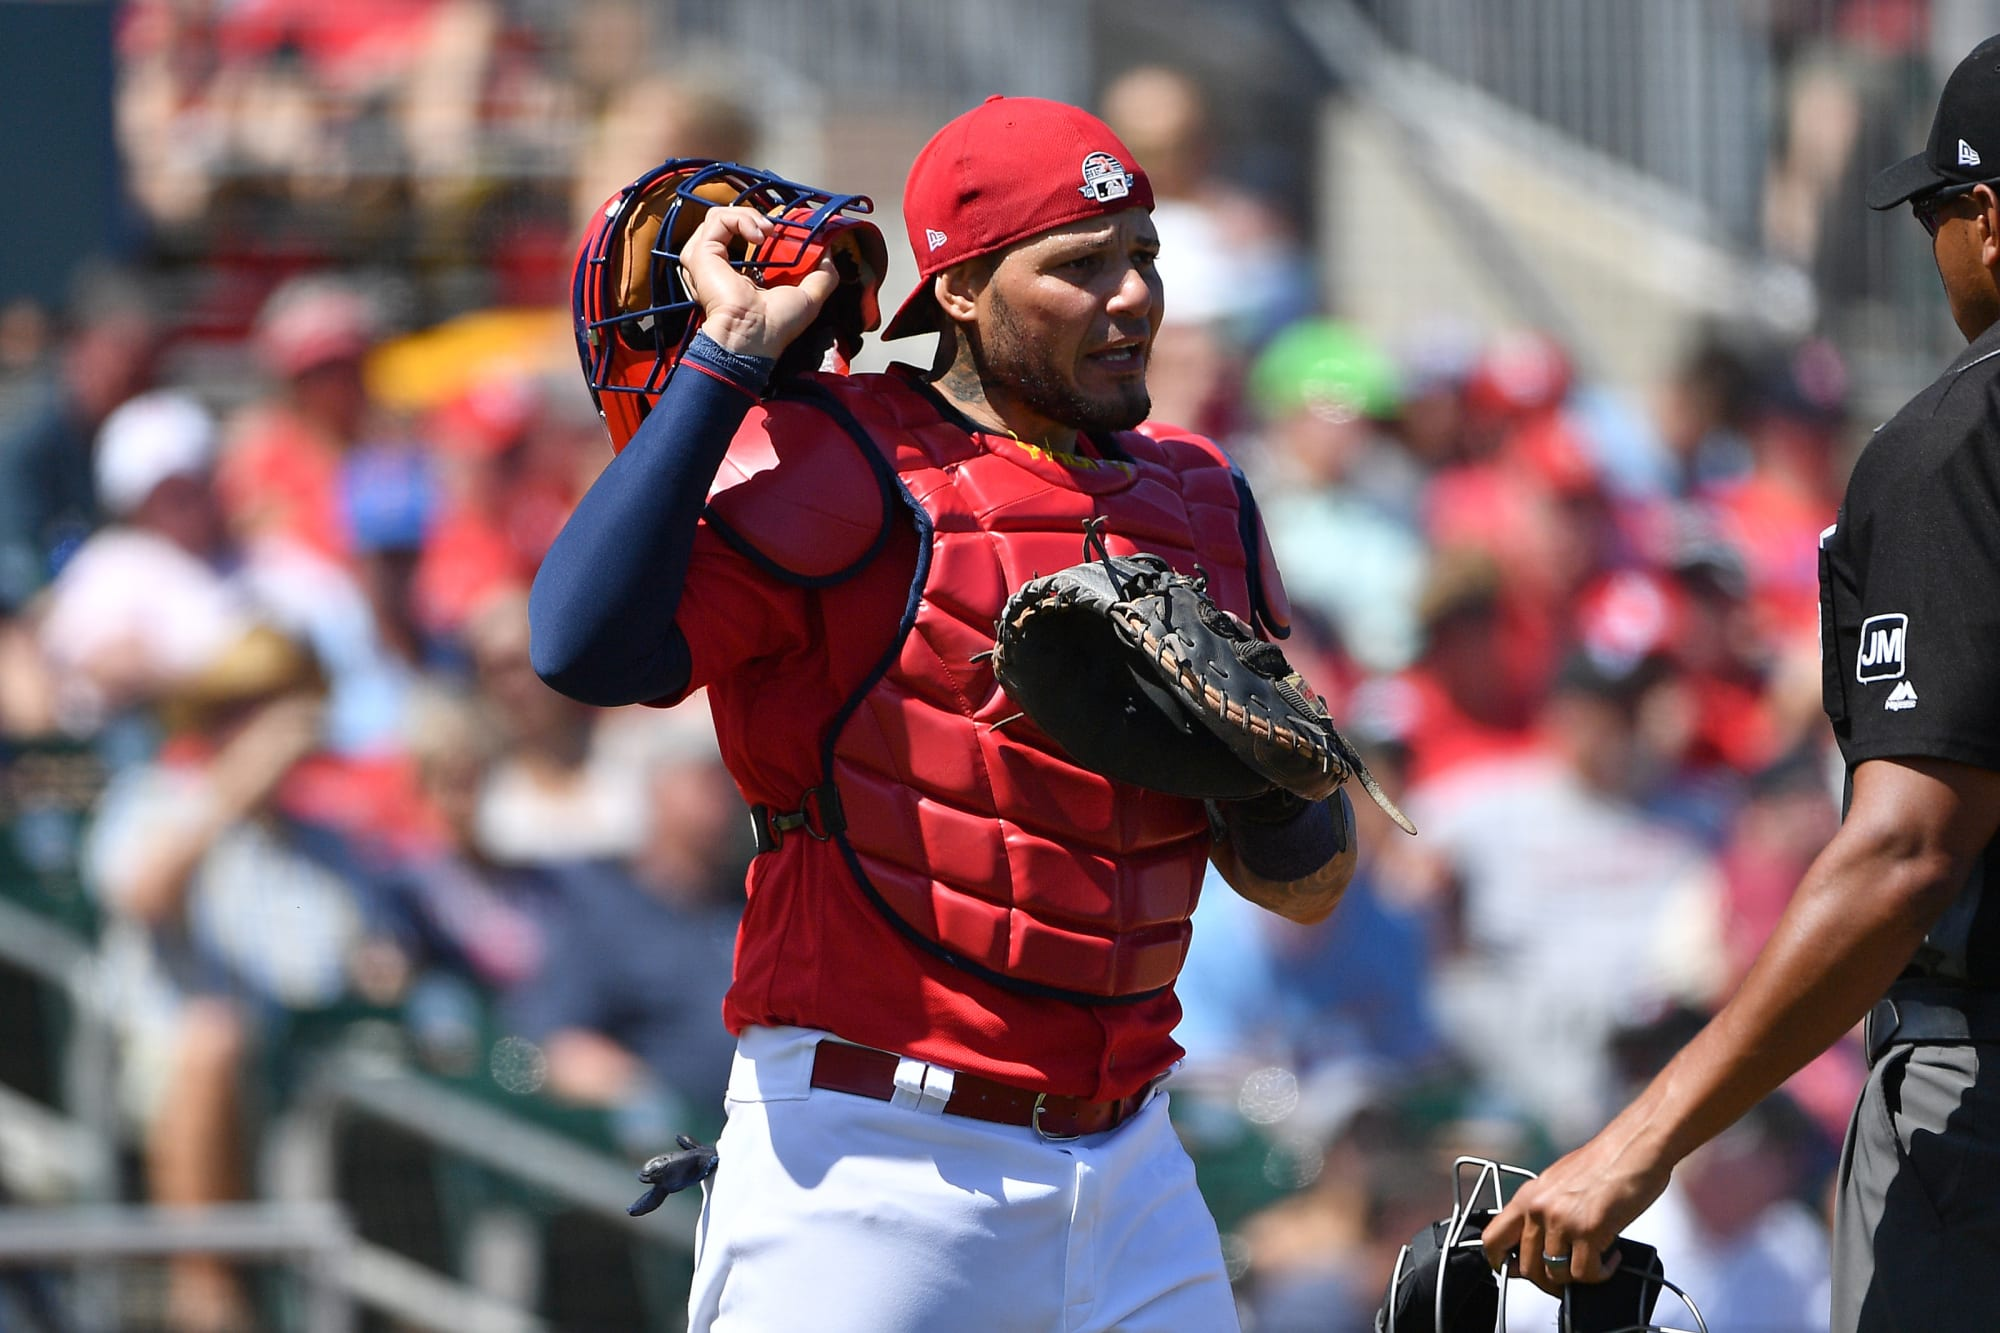 St. Louis Cardinals milestones to look out for in 2020